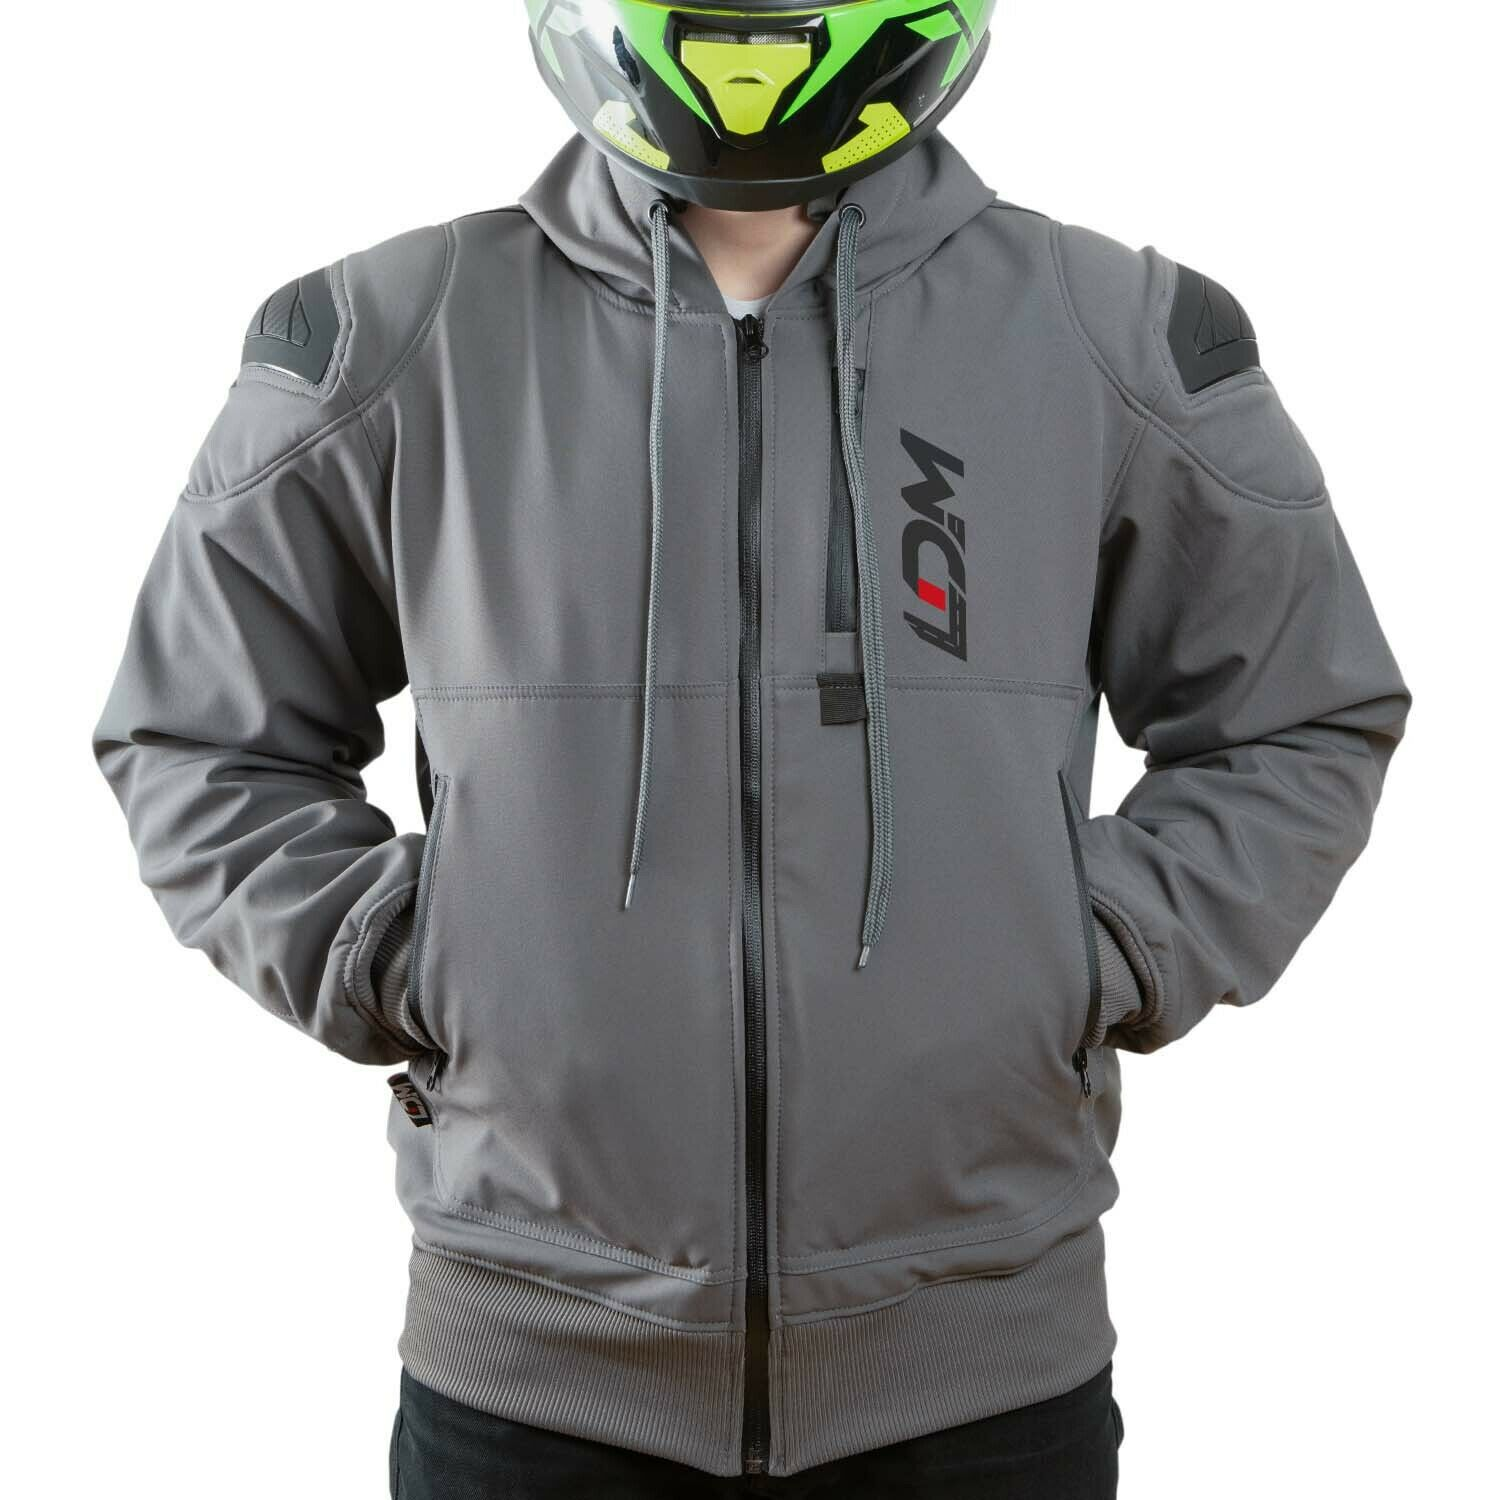 Grey Bikers Gear The CrossFire Grey Full Kevlar Motorcycle Hoodie CE Protection Small